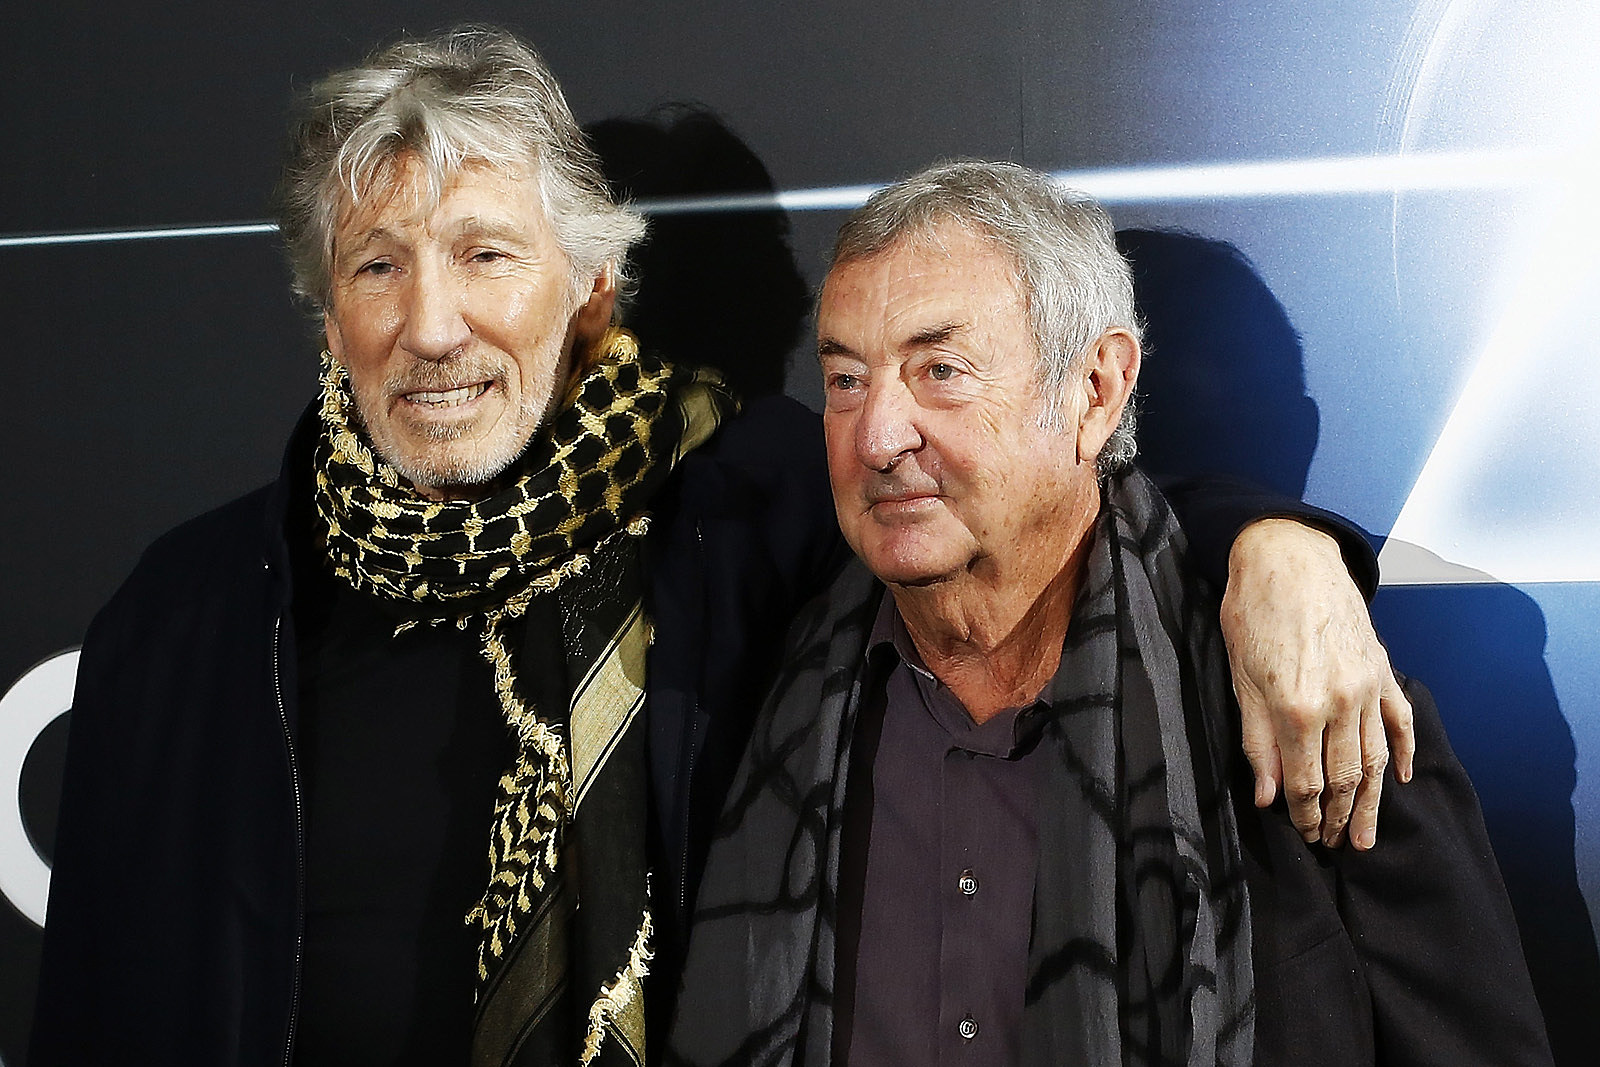 Roger Waters The Wall' Documentary Coming to Theaters in